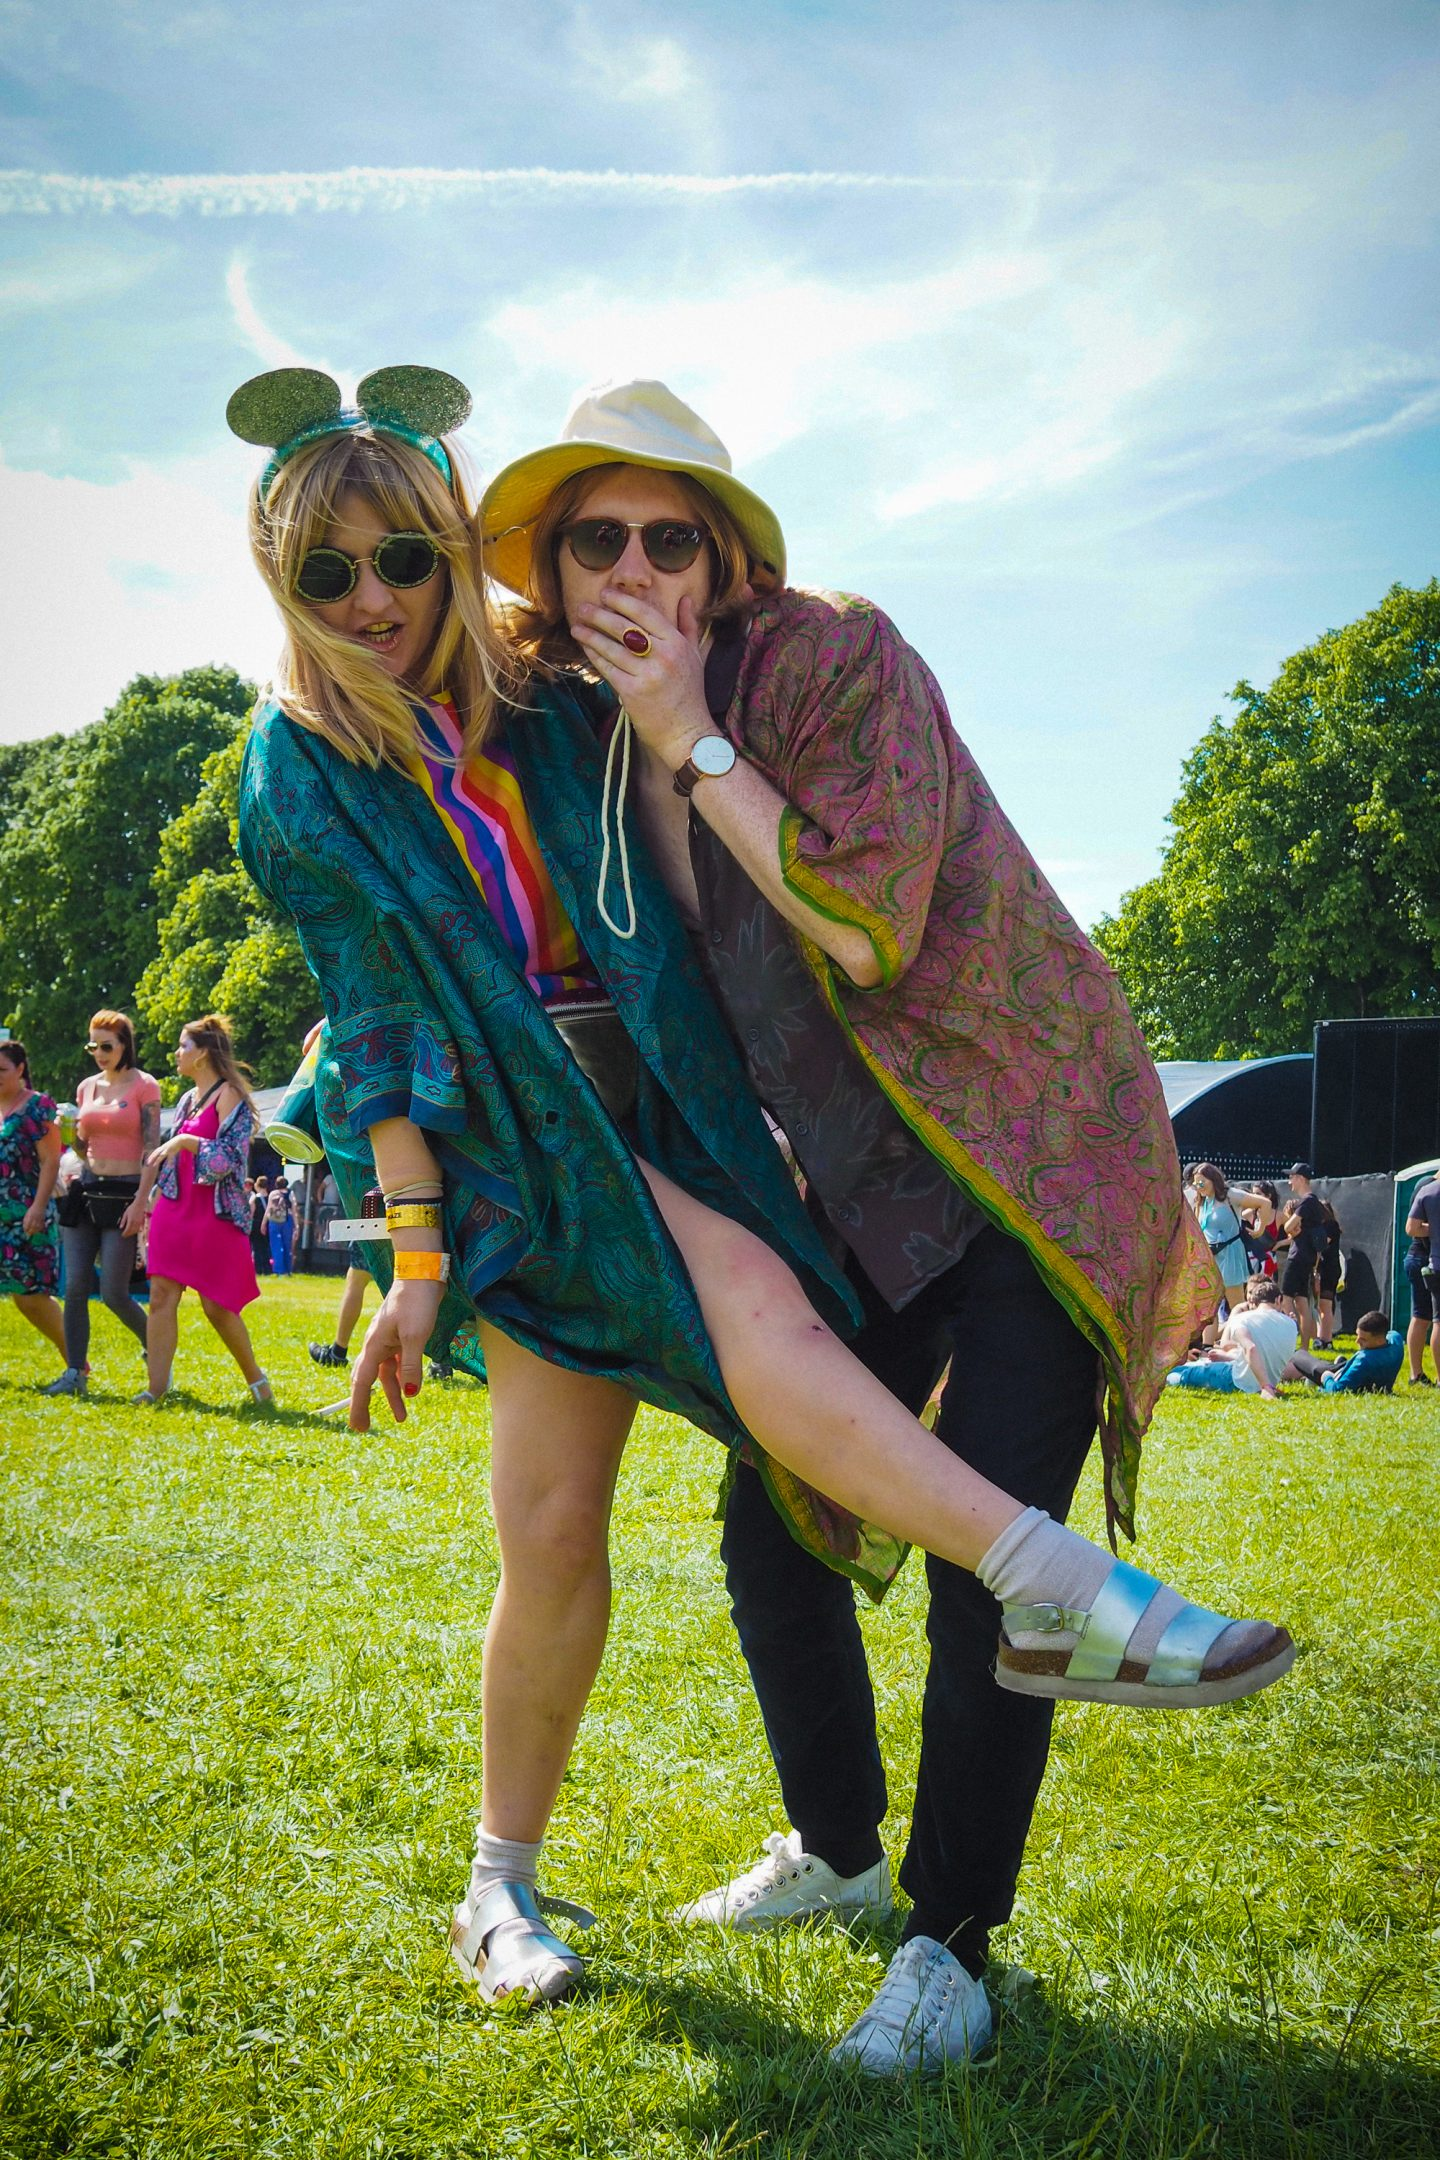 Dulcie's Feathers silk kimonos, Love Saves the Day Festival Bristol